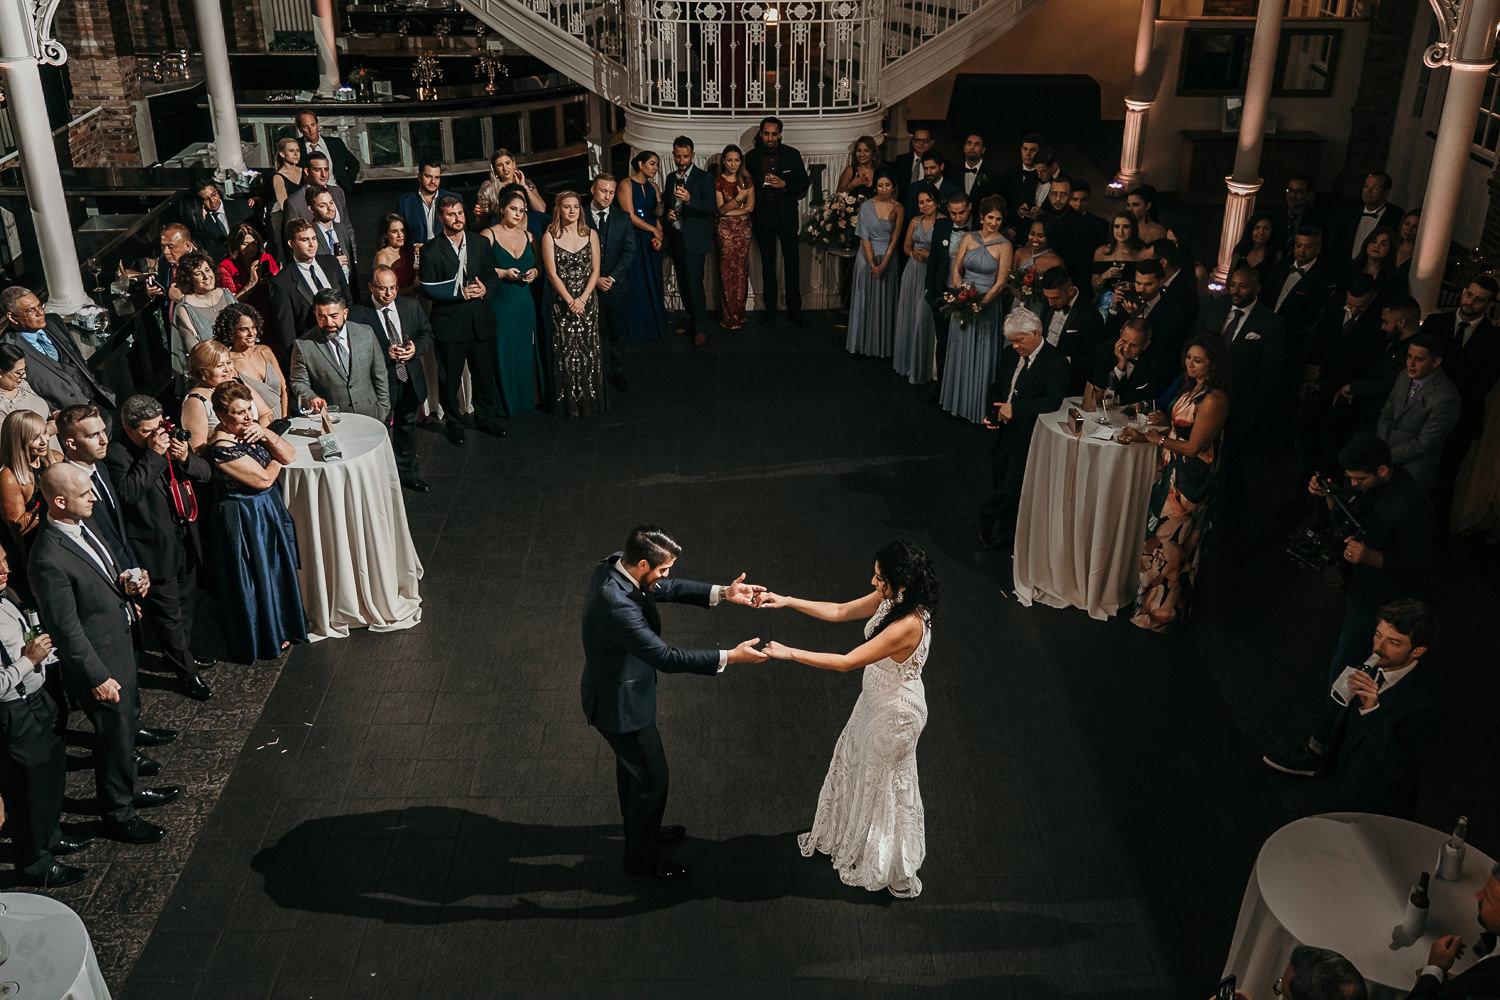 wide balcony shot of first dance bride and groom holding hands